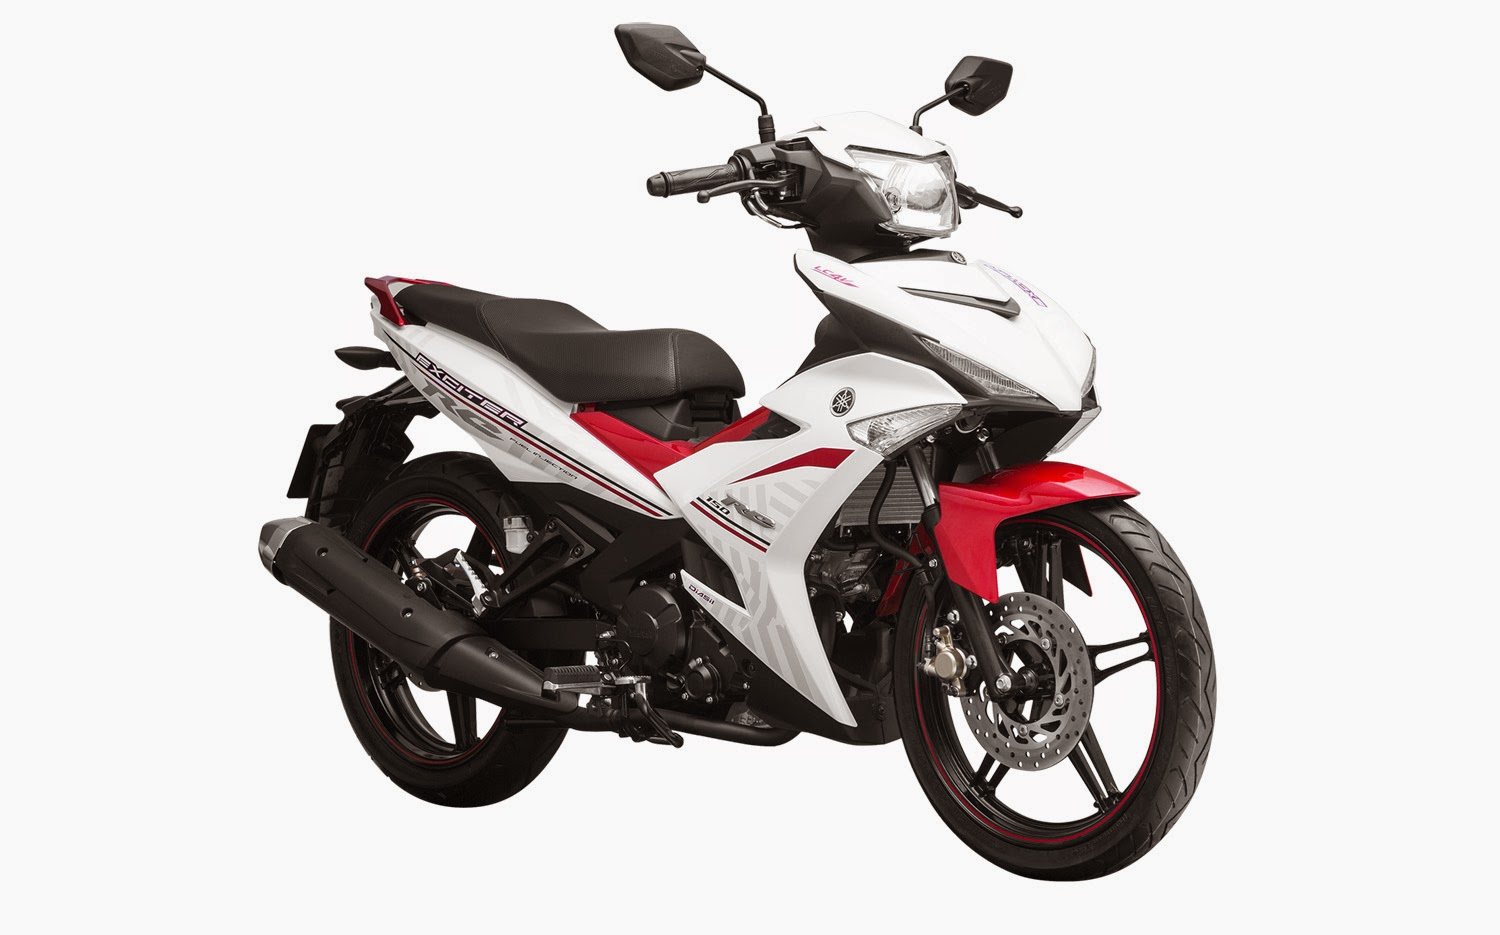 yamaha jupiter mx king officially launched in indonesia